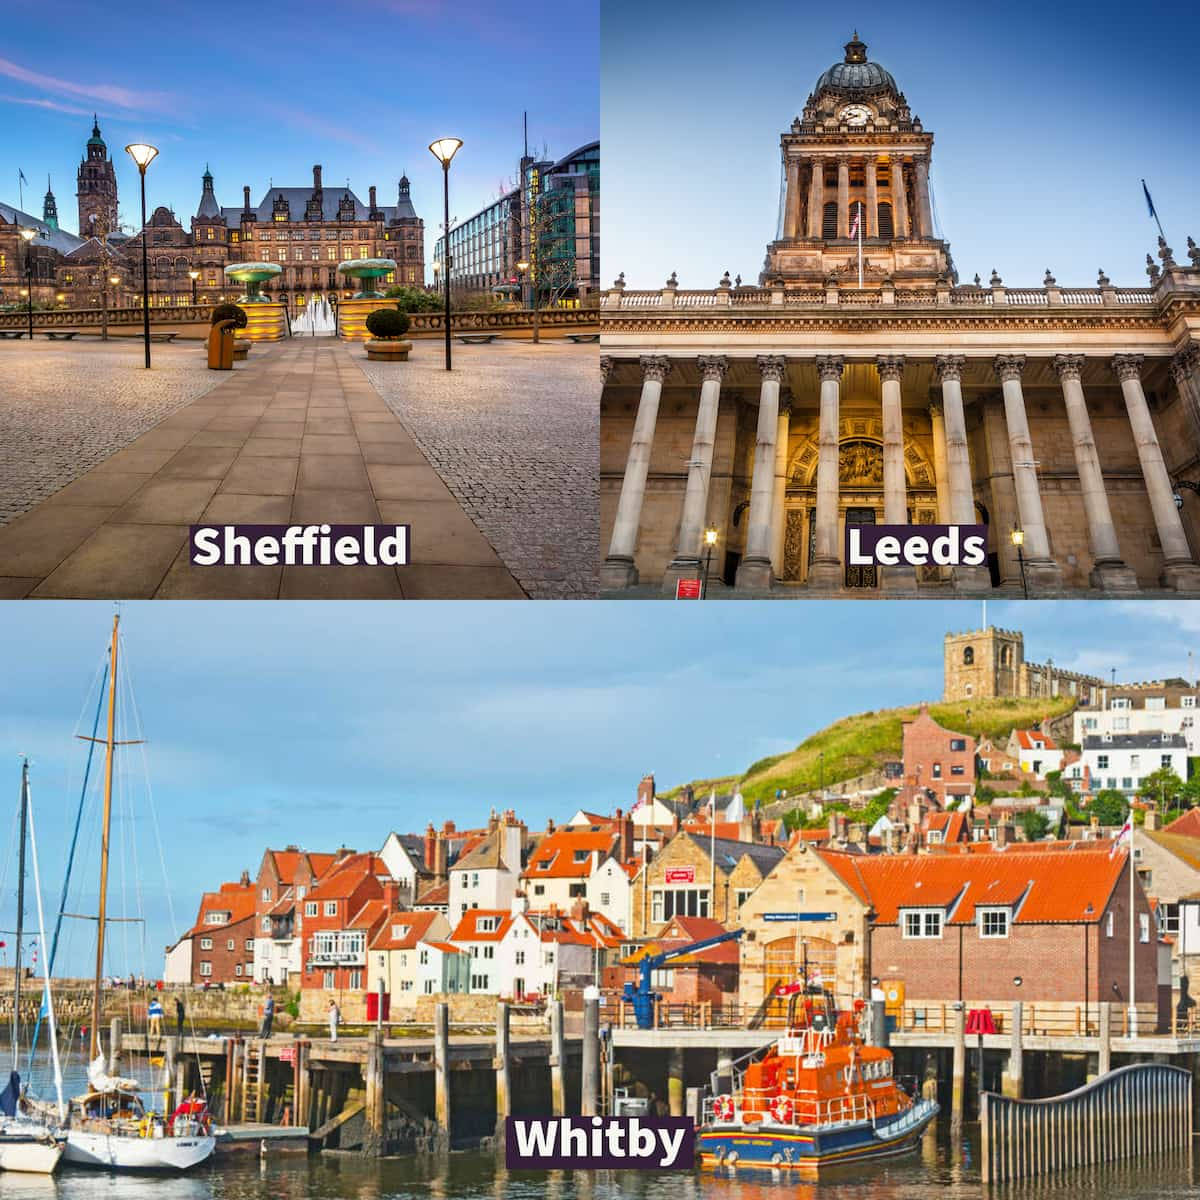 top left a photo of Sheffield, top right a photo of Leeds and bottom photo Whitby.